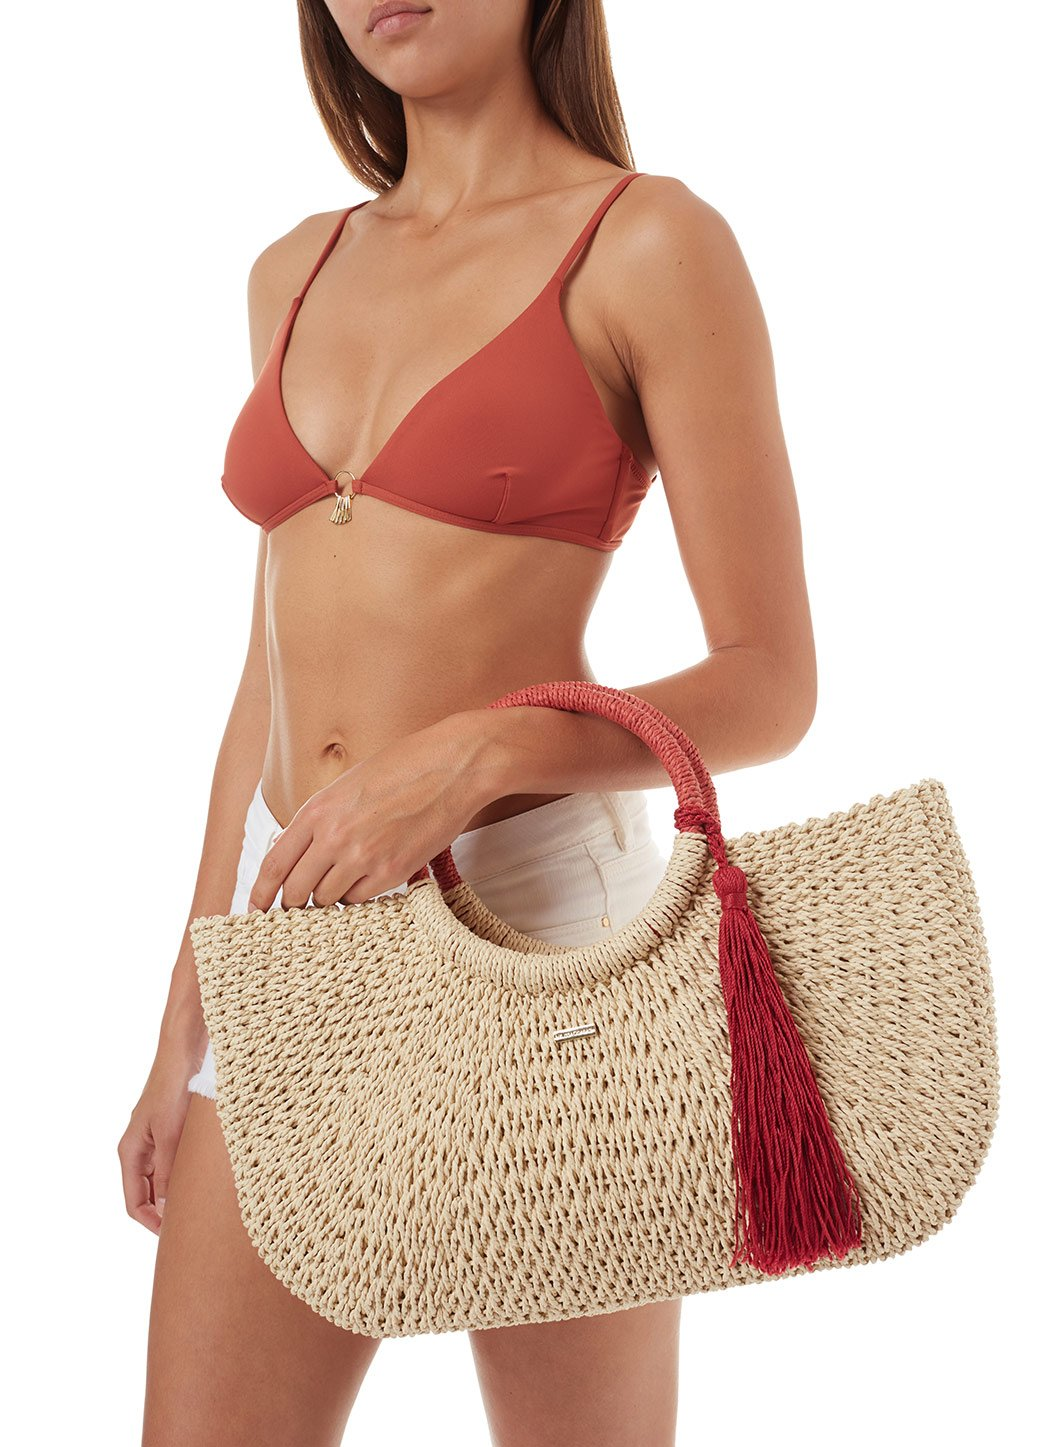 sorrento woven basket tassle bag natural cinnamon 2019 5